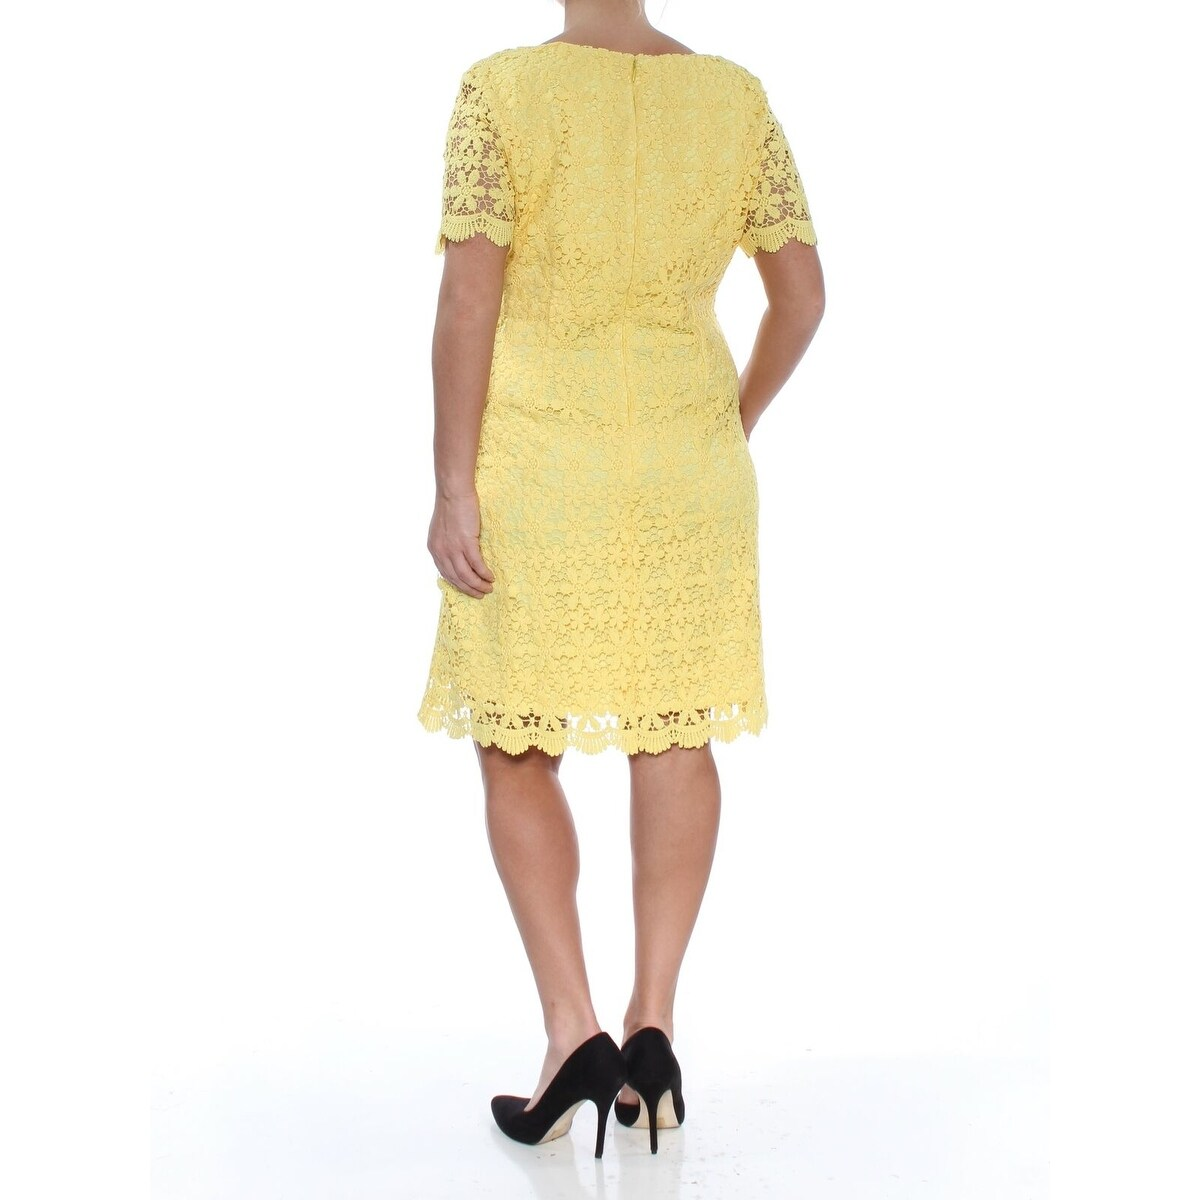 8efbd05fbe5e Shop Jessica Howard Yellow Women's Size 12 Floral Lace Sheath Dress - Free  Shipping On Orders Over $45 - Overstock - 27466930